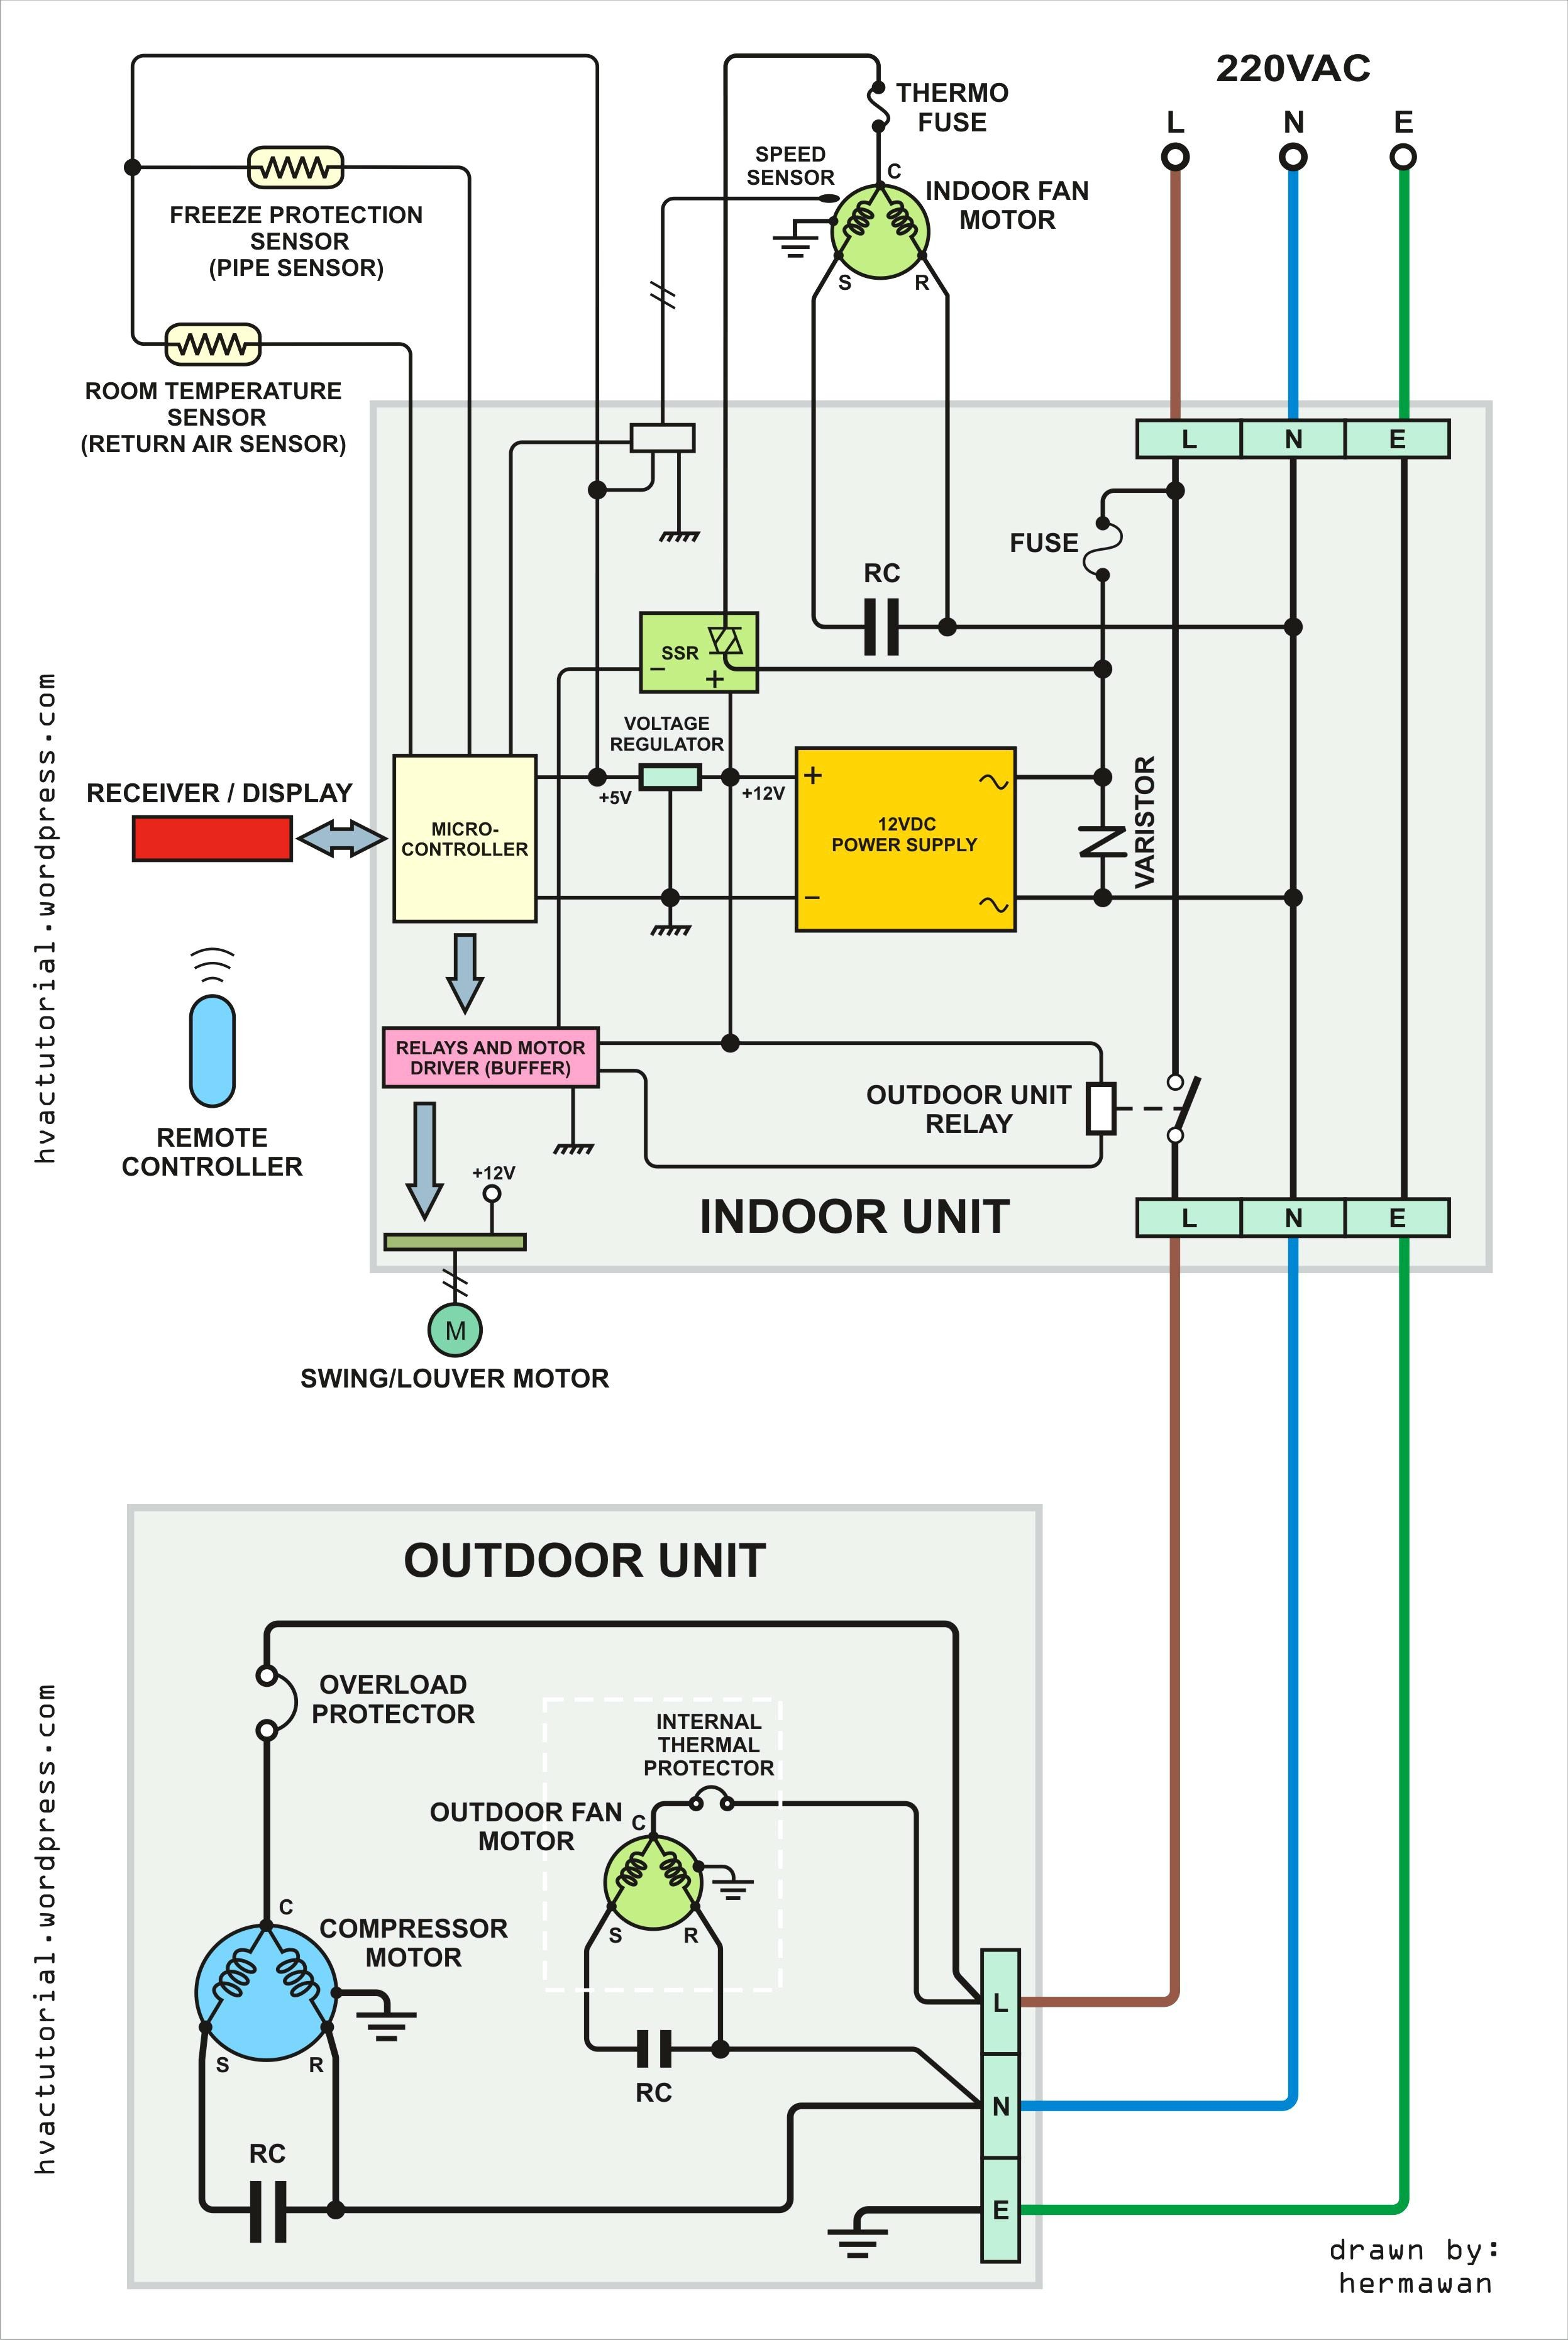 Home Electrical Wiring Diagrams Outdoor Electrical Wiring Diagrams Outside Electrical Wiring Of Home Electrical Wiring Diagrams